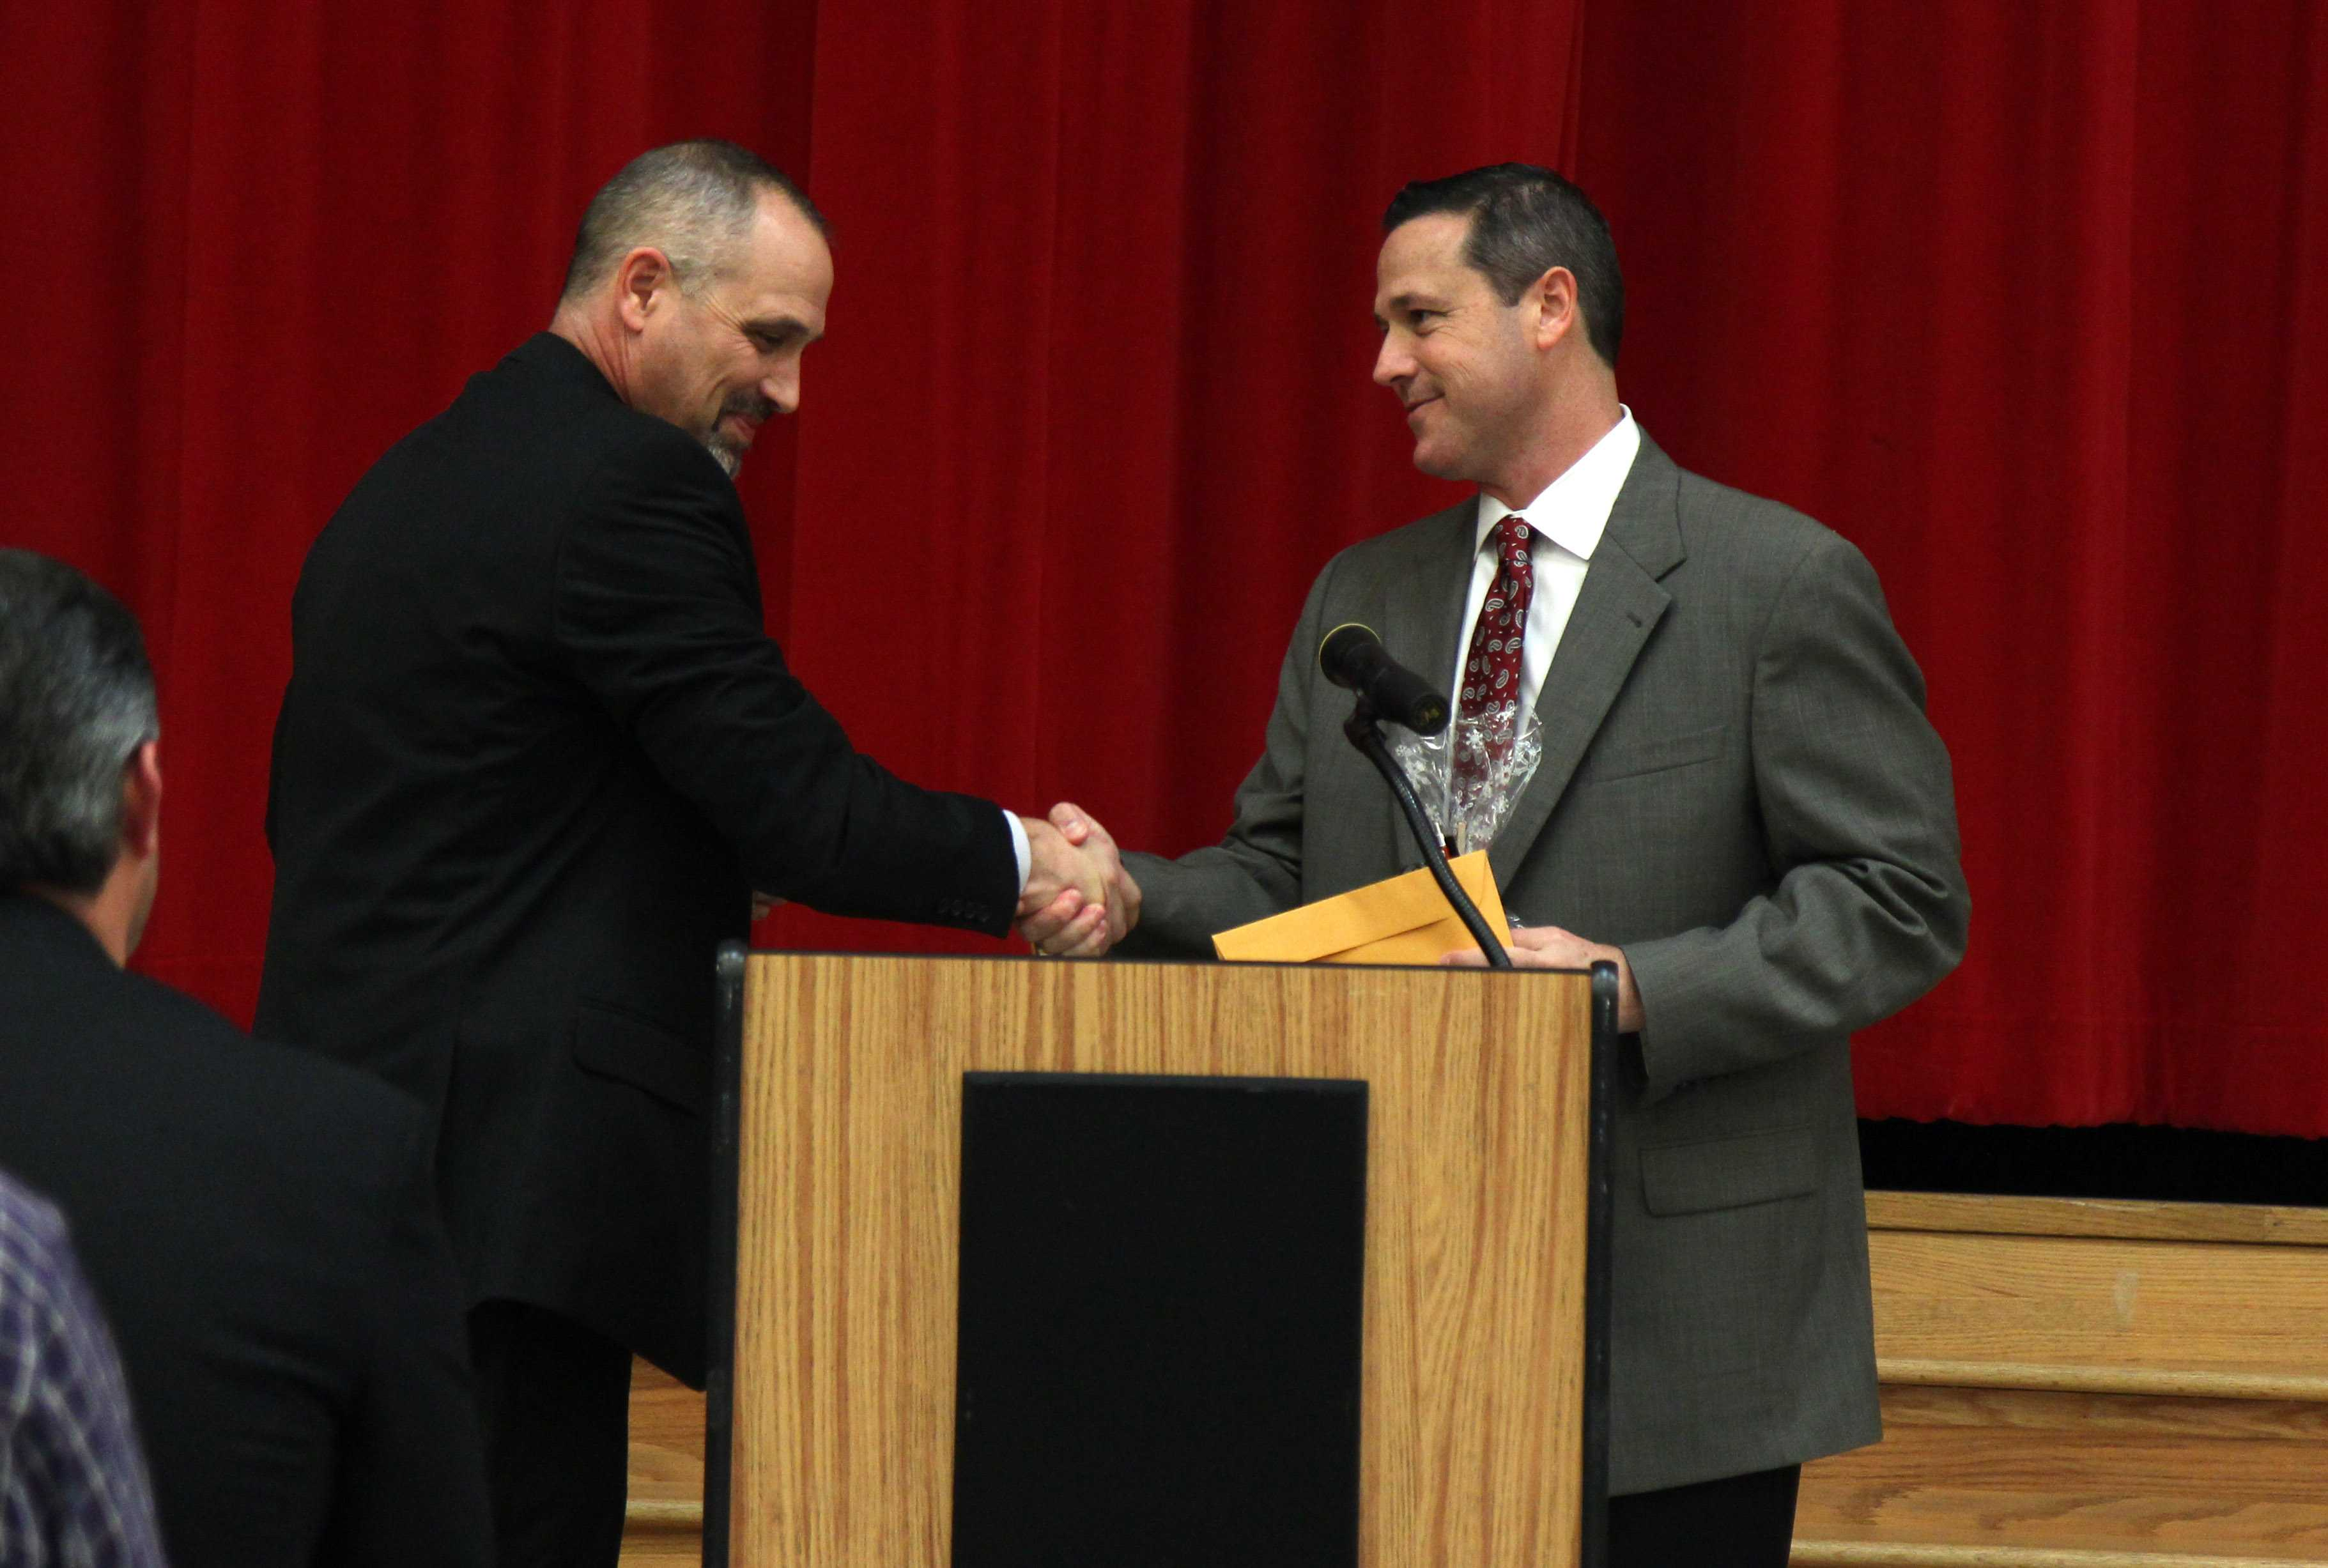 New head football coach Todd Ford receives his contract from principal Chris Mayfield after being confirmed by the school board on Wednesday night.